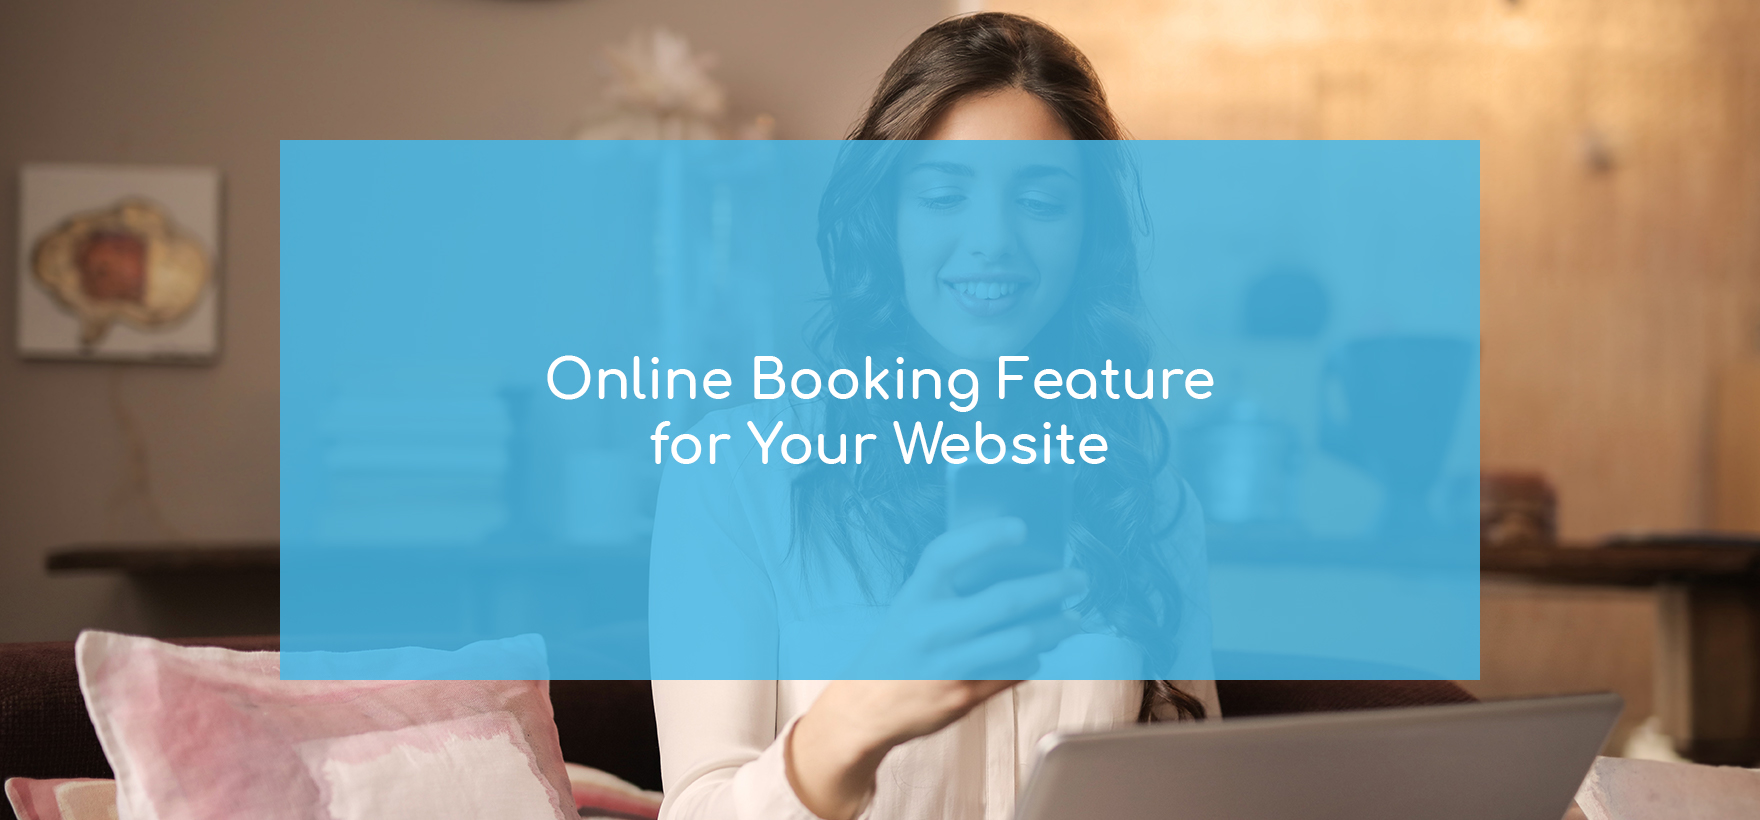 Salon booking app. Online Booking Feature for Your Salon Website